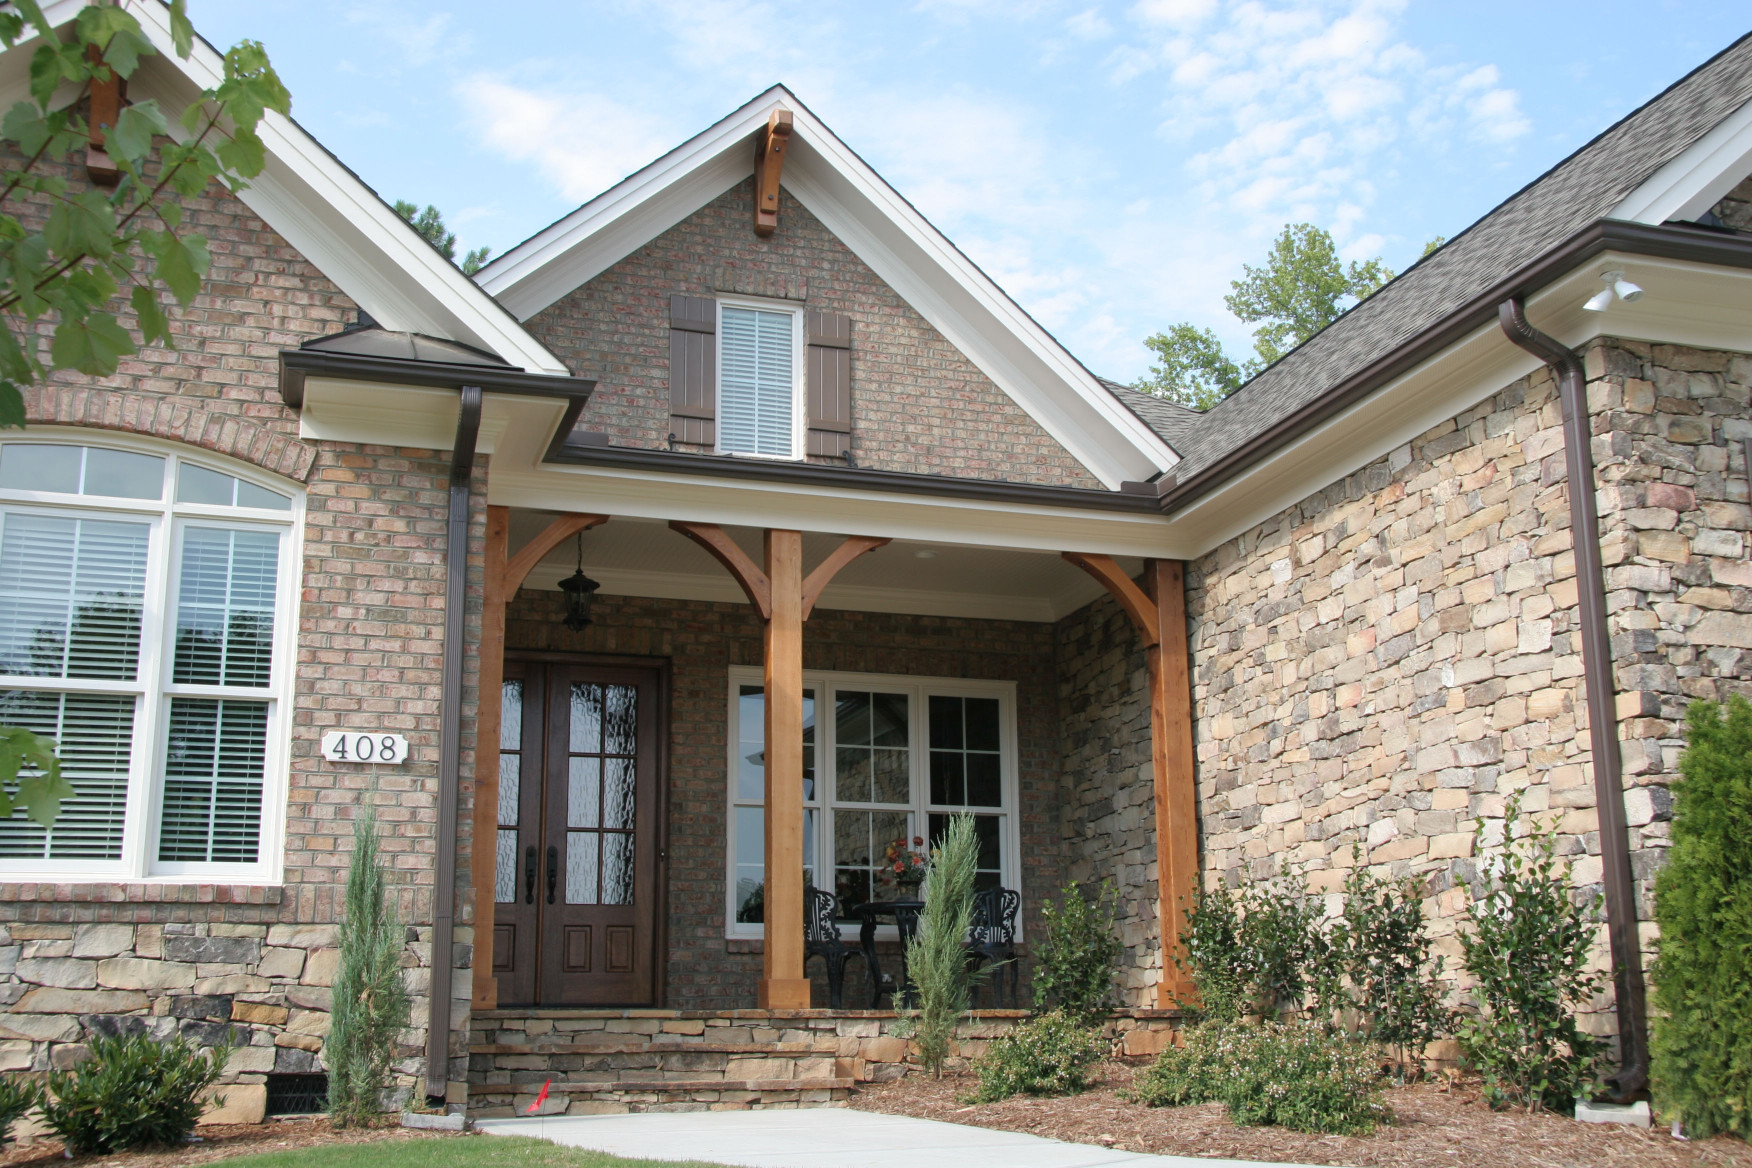 Our western red cedar post kit with brackets adds elegance to this home's front entry.